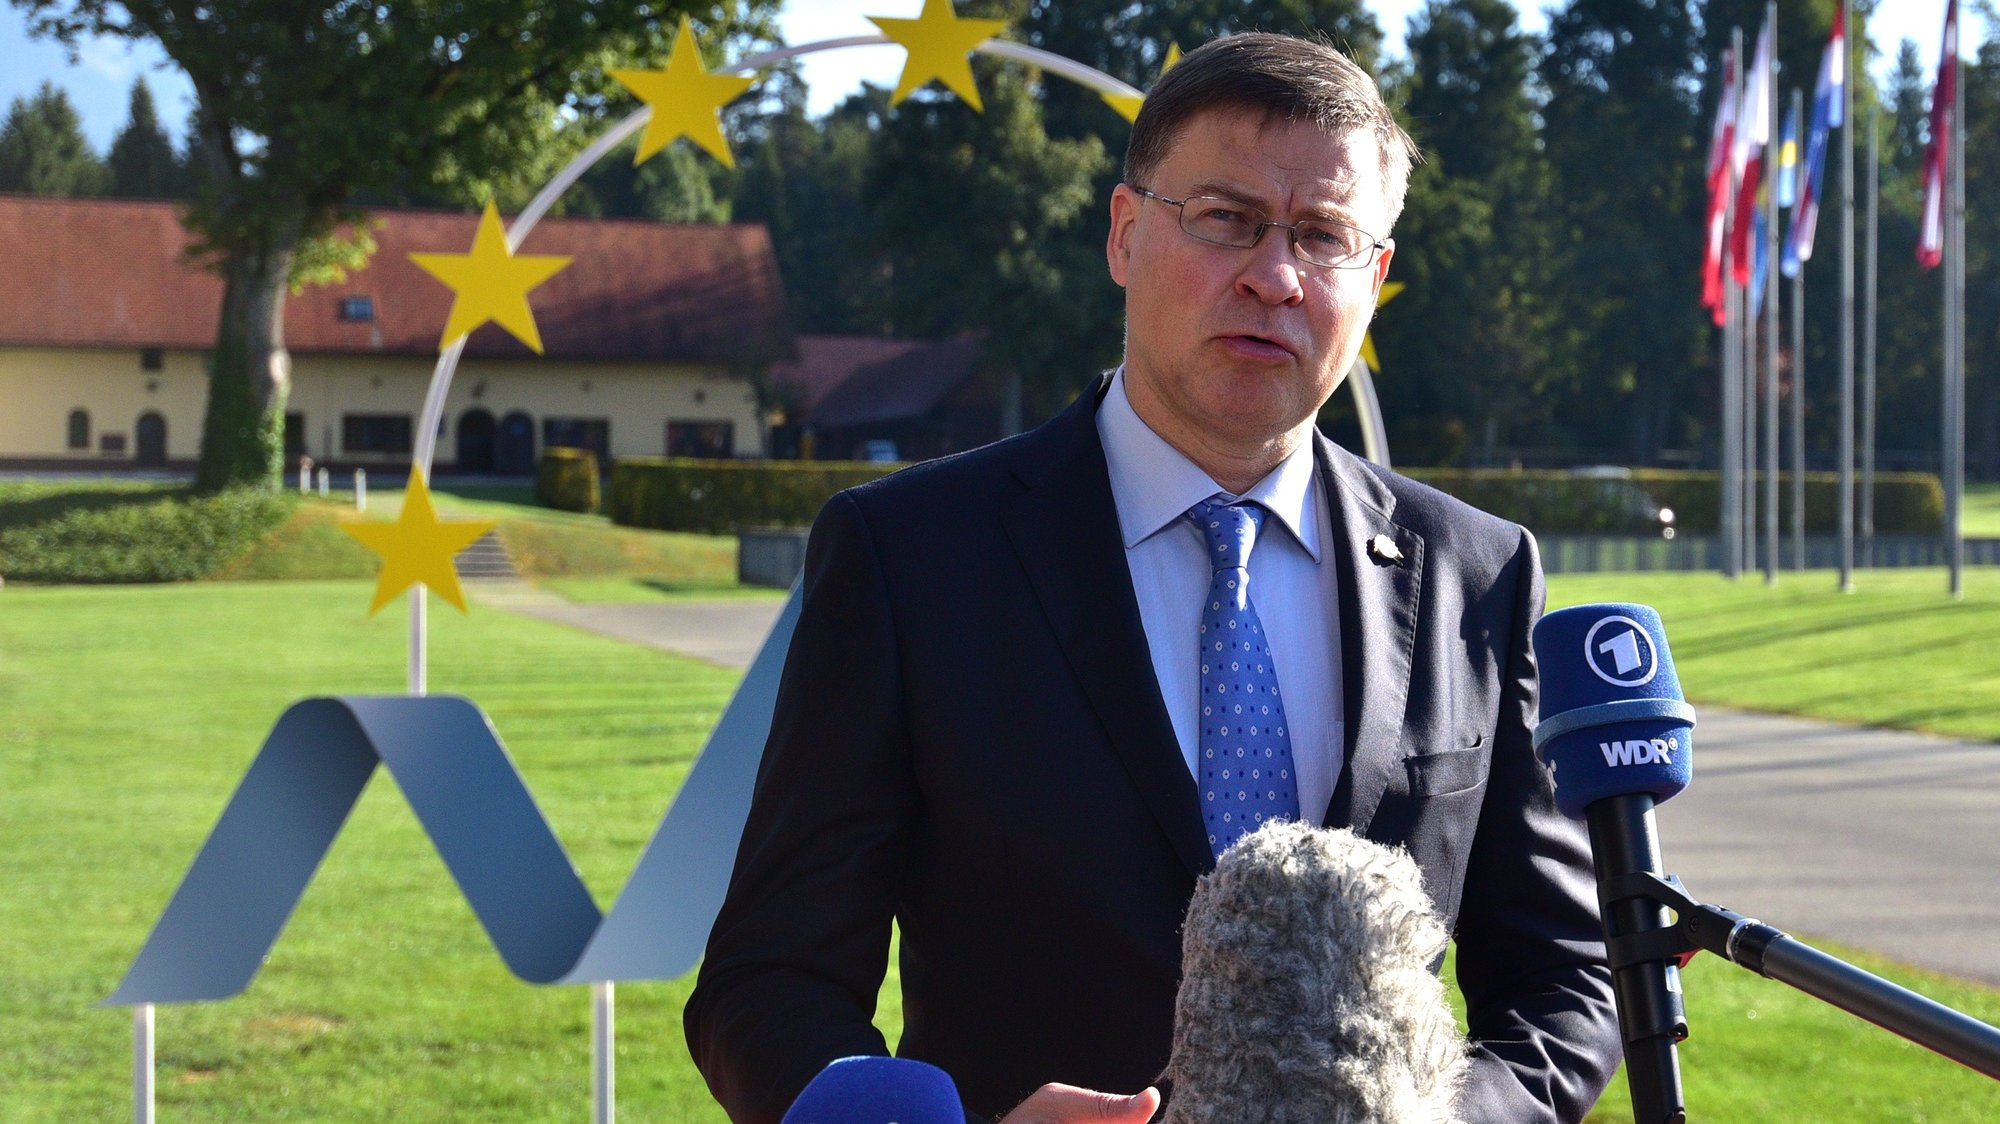 epa09459057 European Commission Executive Vice President Valdis Dombrovskis speaks before an Informal meeting of EU Ministers for Economic and Financial Affairs, at the Kongresni center Brdo, Predoslje, Slovenia, 10 September 2021. Slovenia is hosting a two-day Informal Meeting of EU Ministers for Economic and Financial Affairs.  EPA/IGOR KUPLJENIK